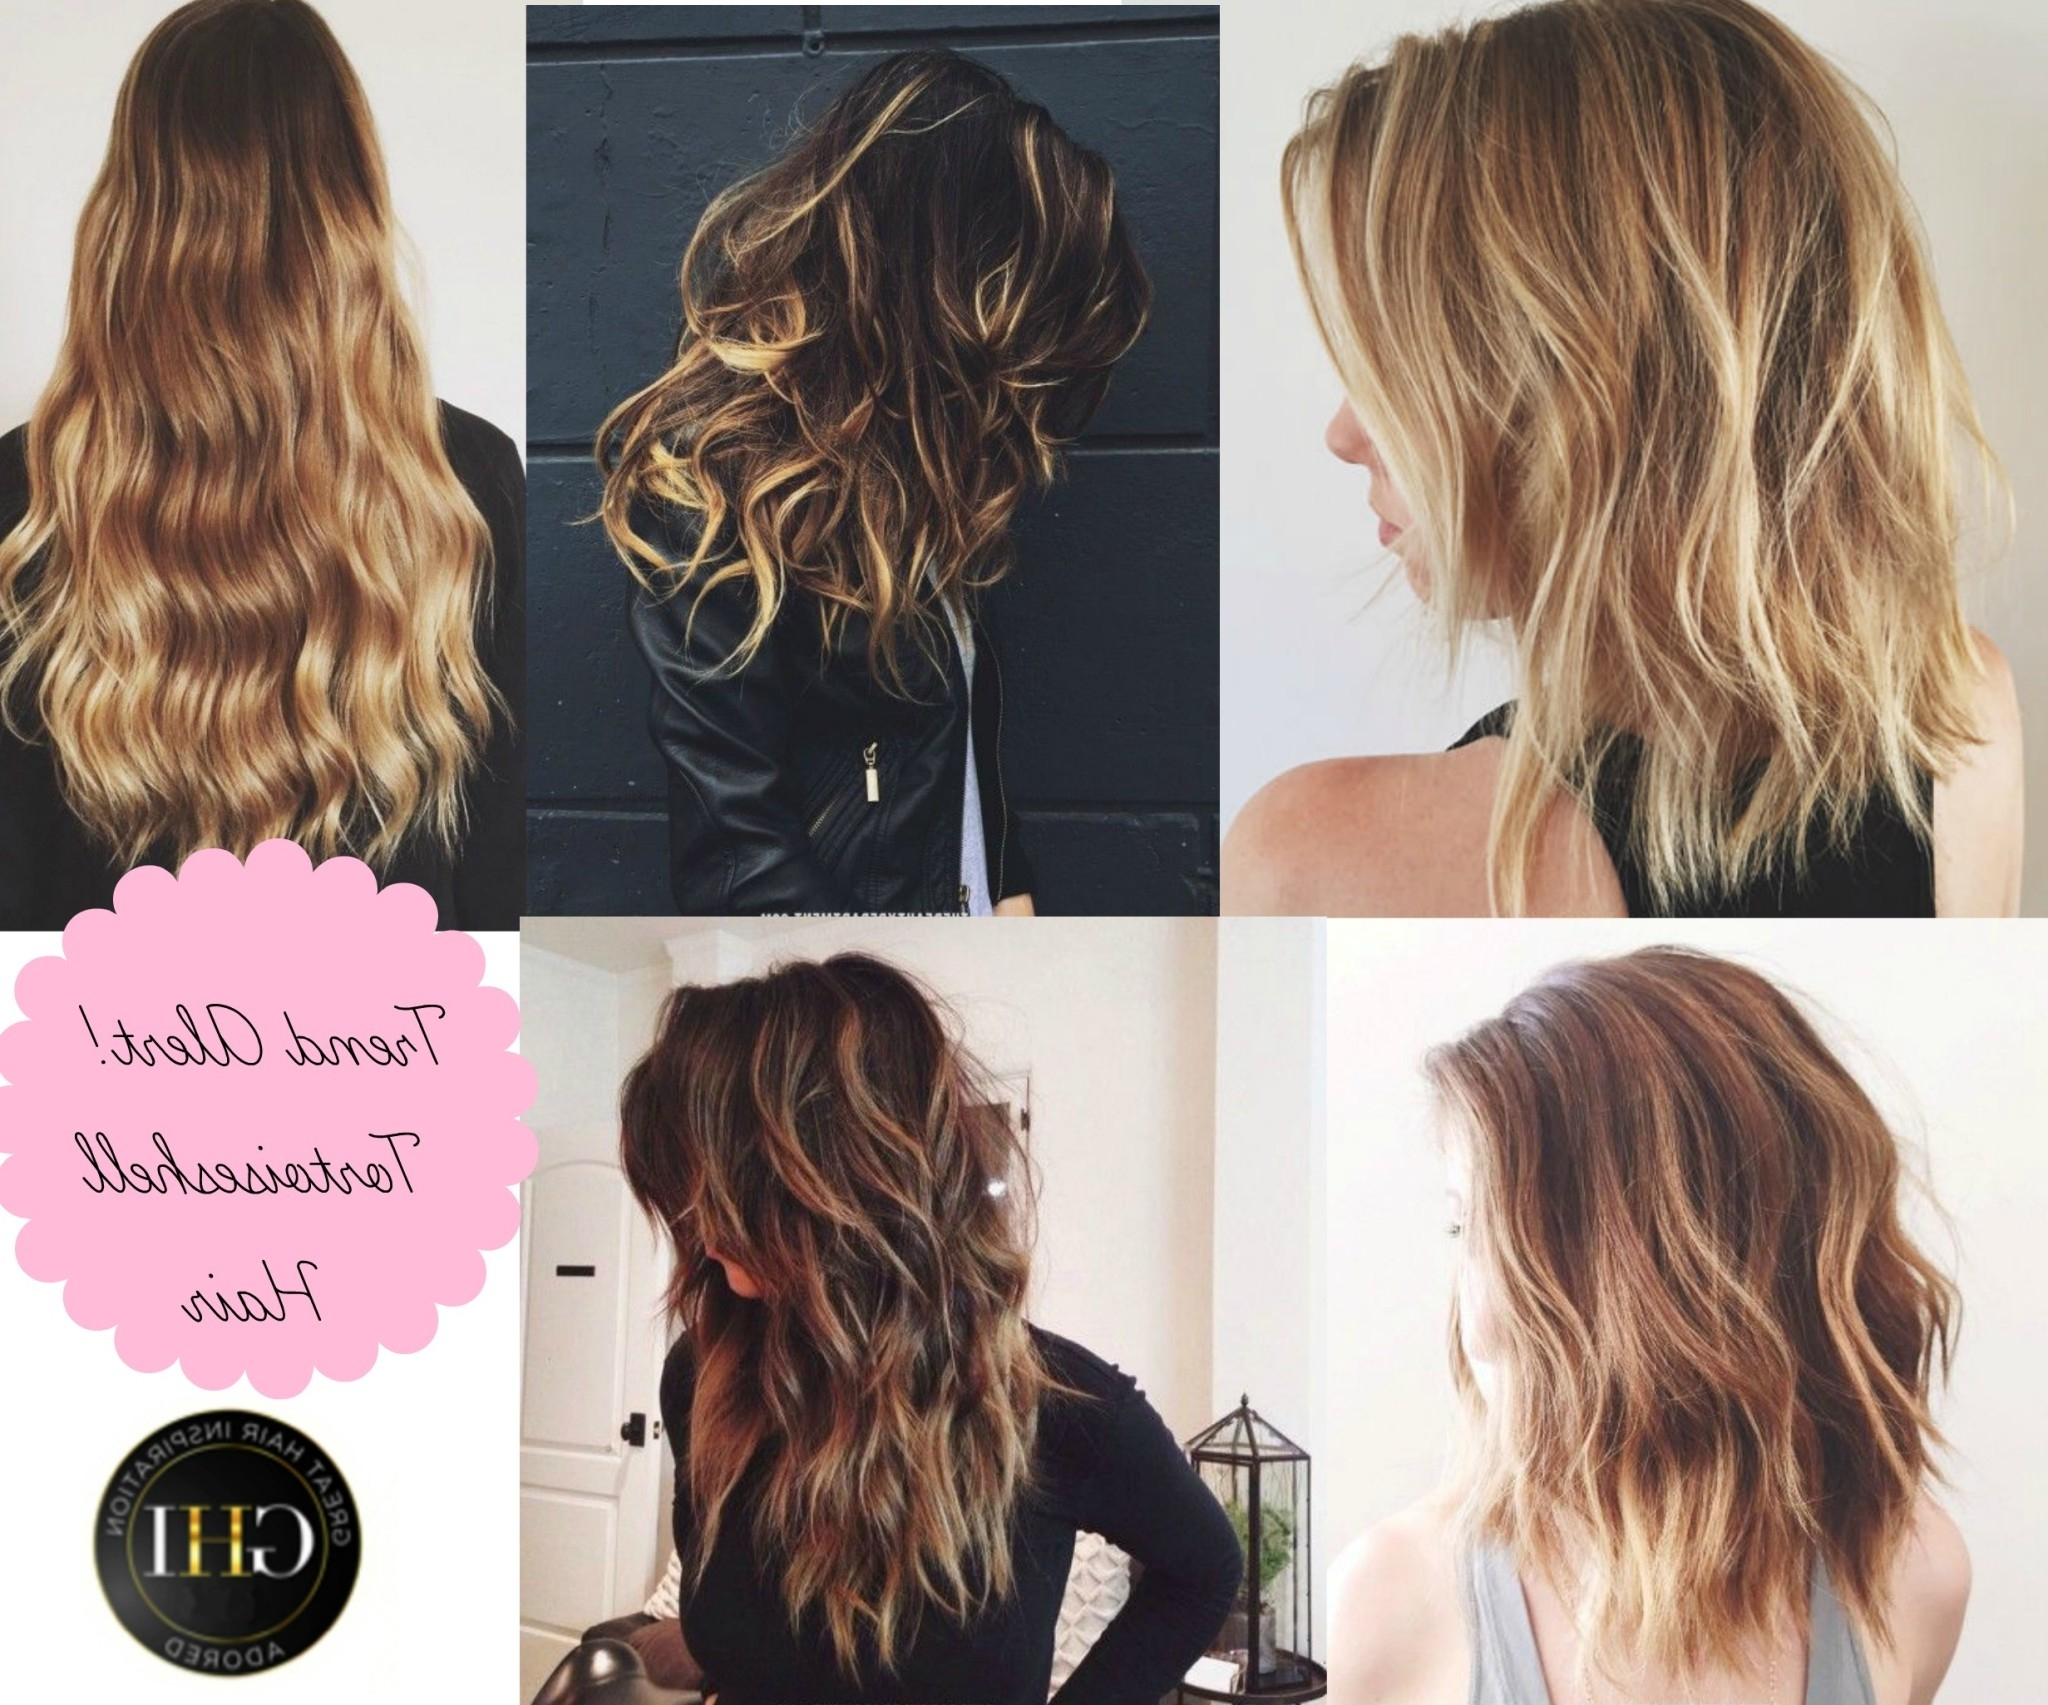 Trend Alert – Tortoiseshell Hair – Great Hair Inspiration Within Widely Used Tortoiseshell Straight Blonde Hairstyles (View 10 of 20)